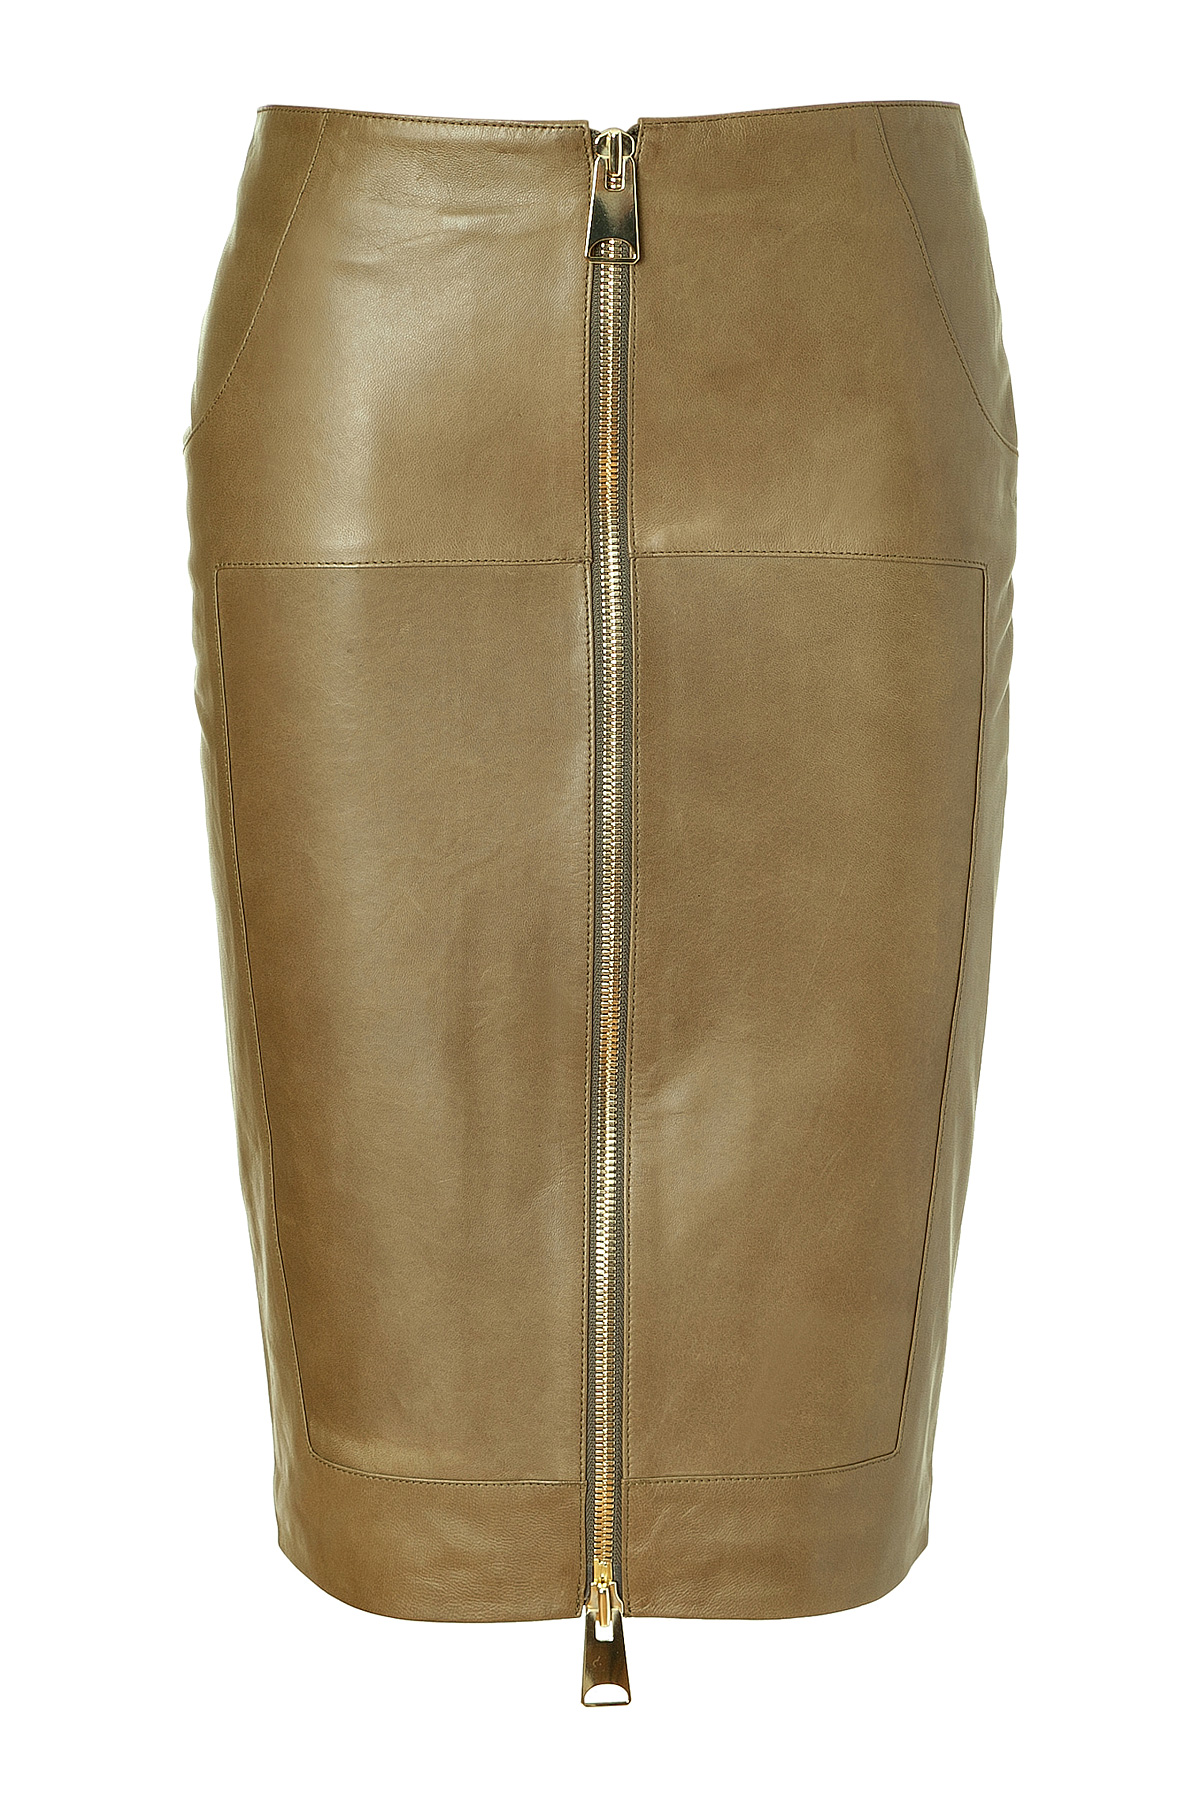 Hakaan Khaki Leather Pencil Skirt in Natural - Save 28% | Lyst